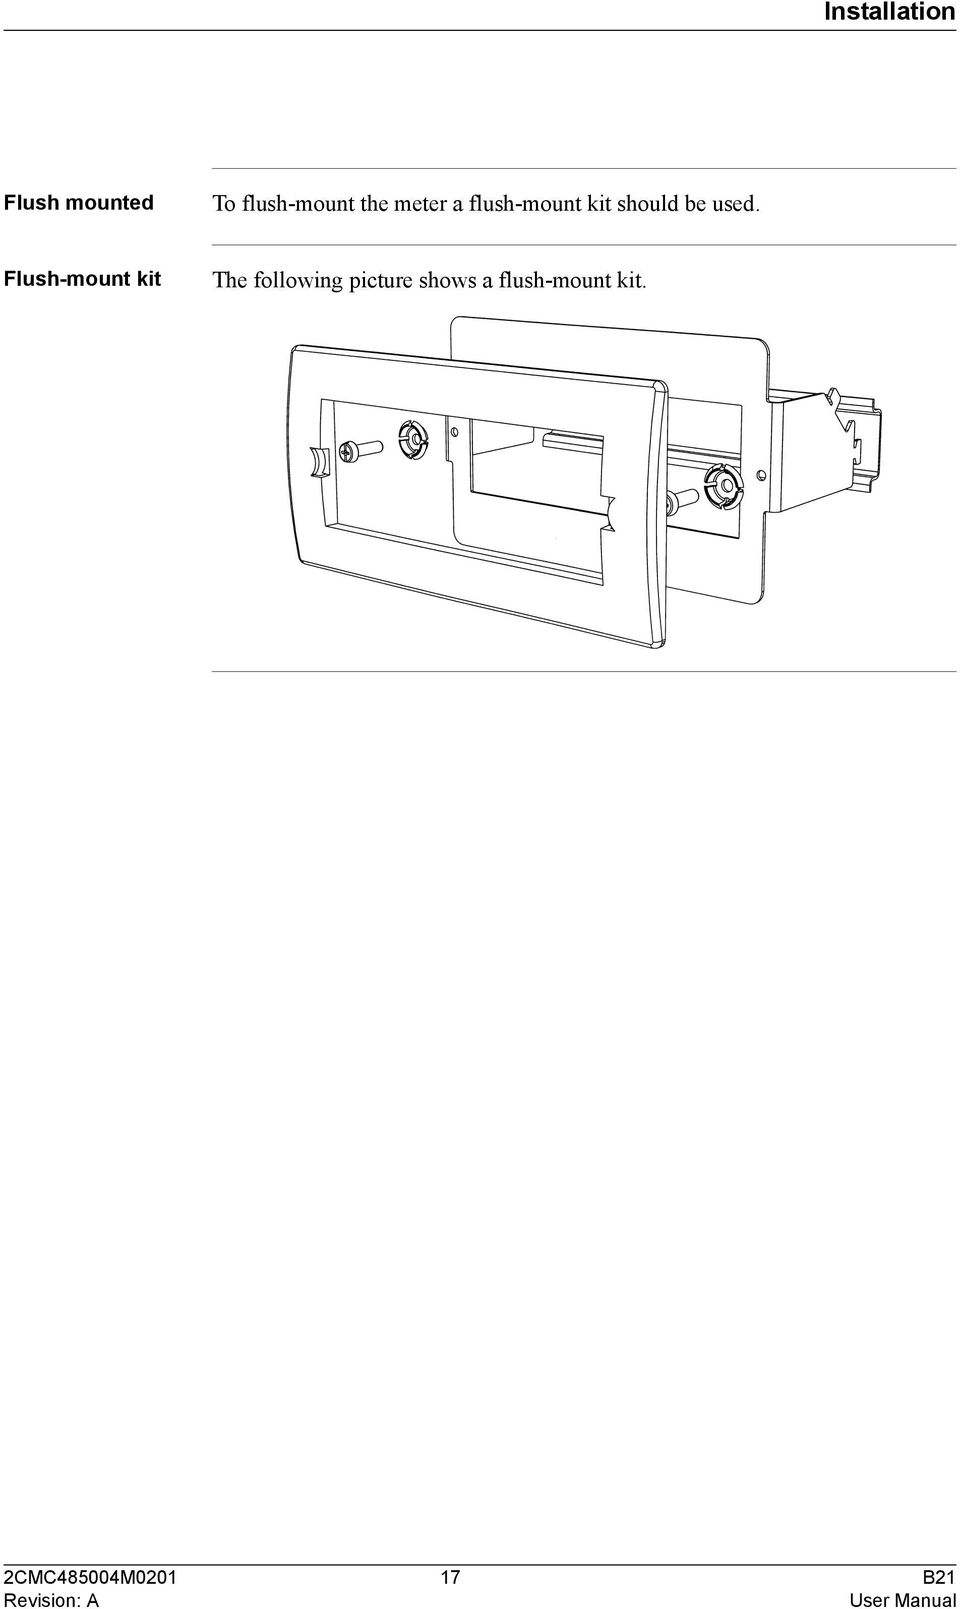 B21 User Manual Document Id 2cmc485004m0201 Revision A Pdf Wiring Diagram Aandc Contactor Flush Mount Kit The Following Picture